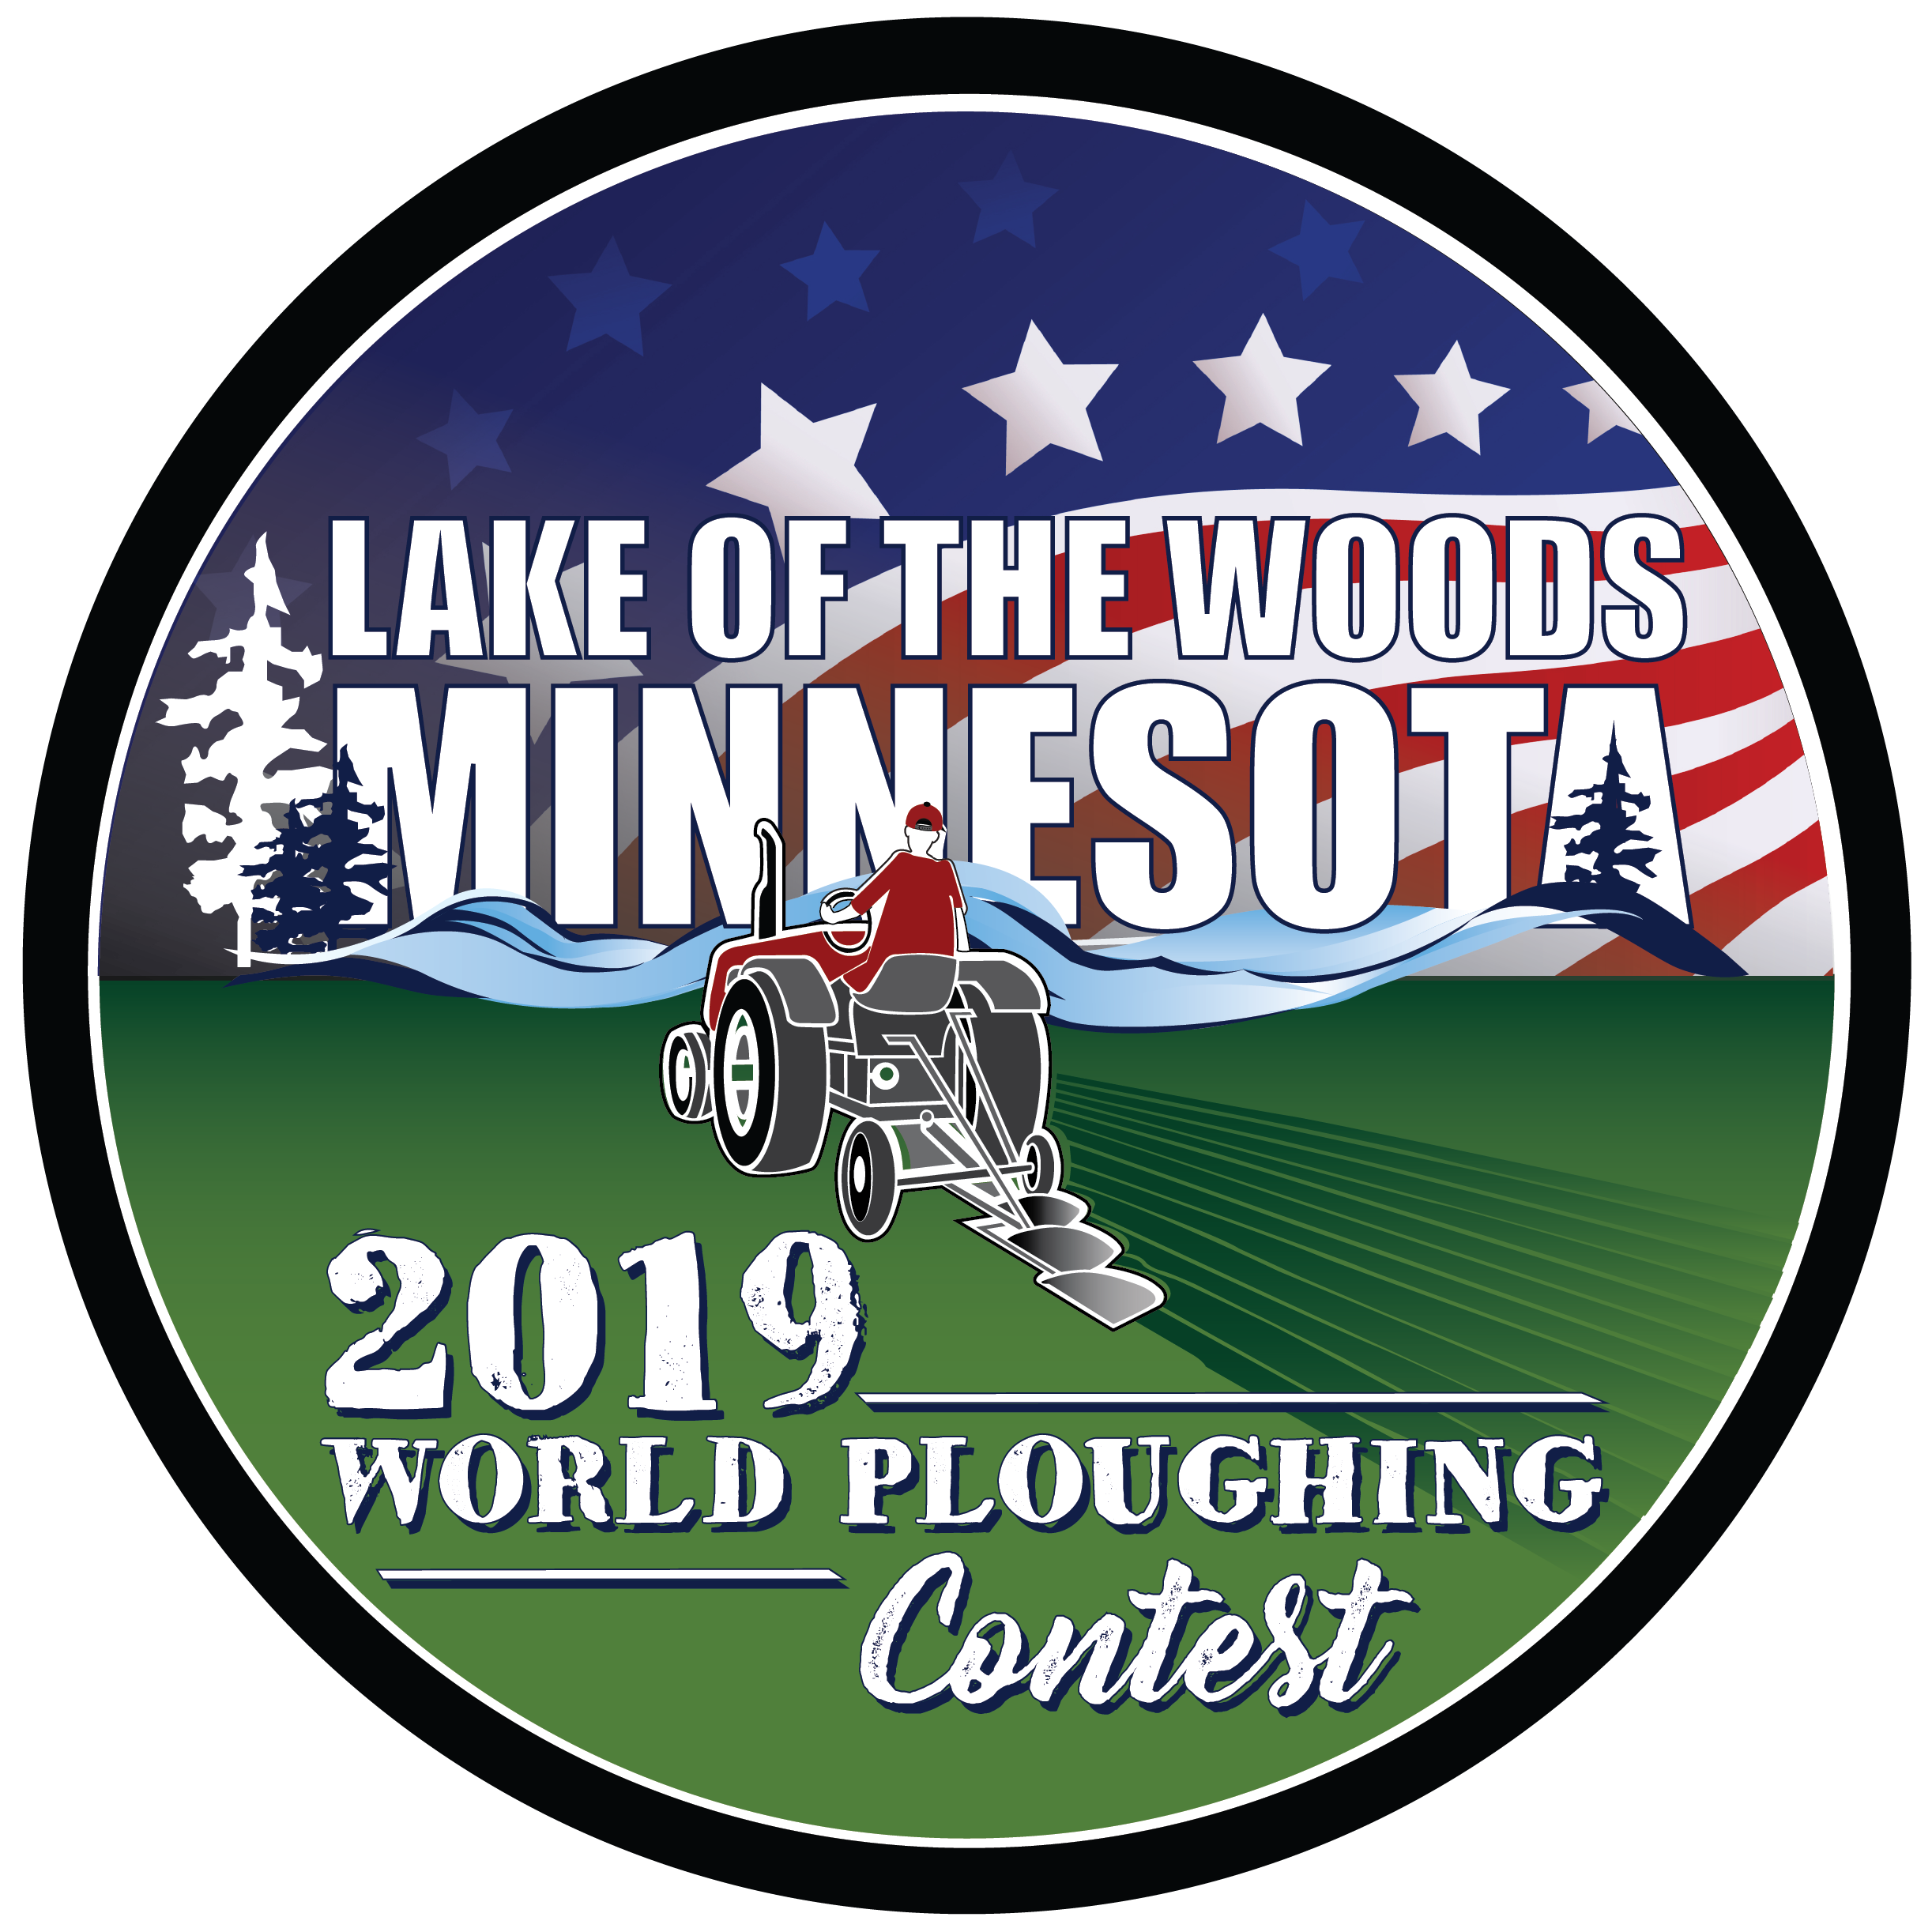 2019 World Ploughing Contest, Lake of the Woods Minnesota